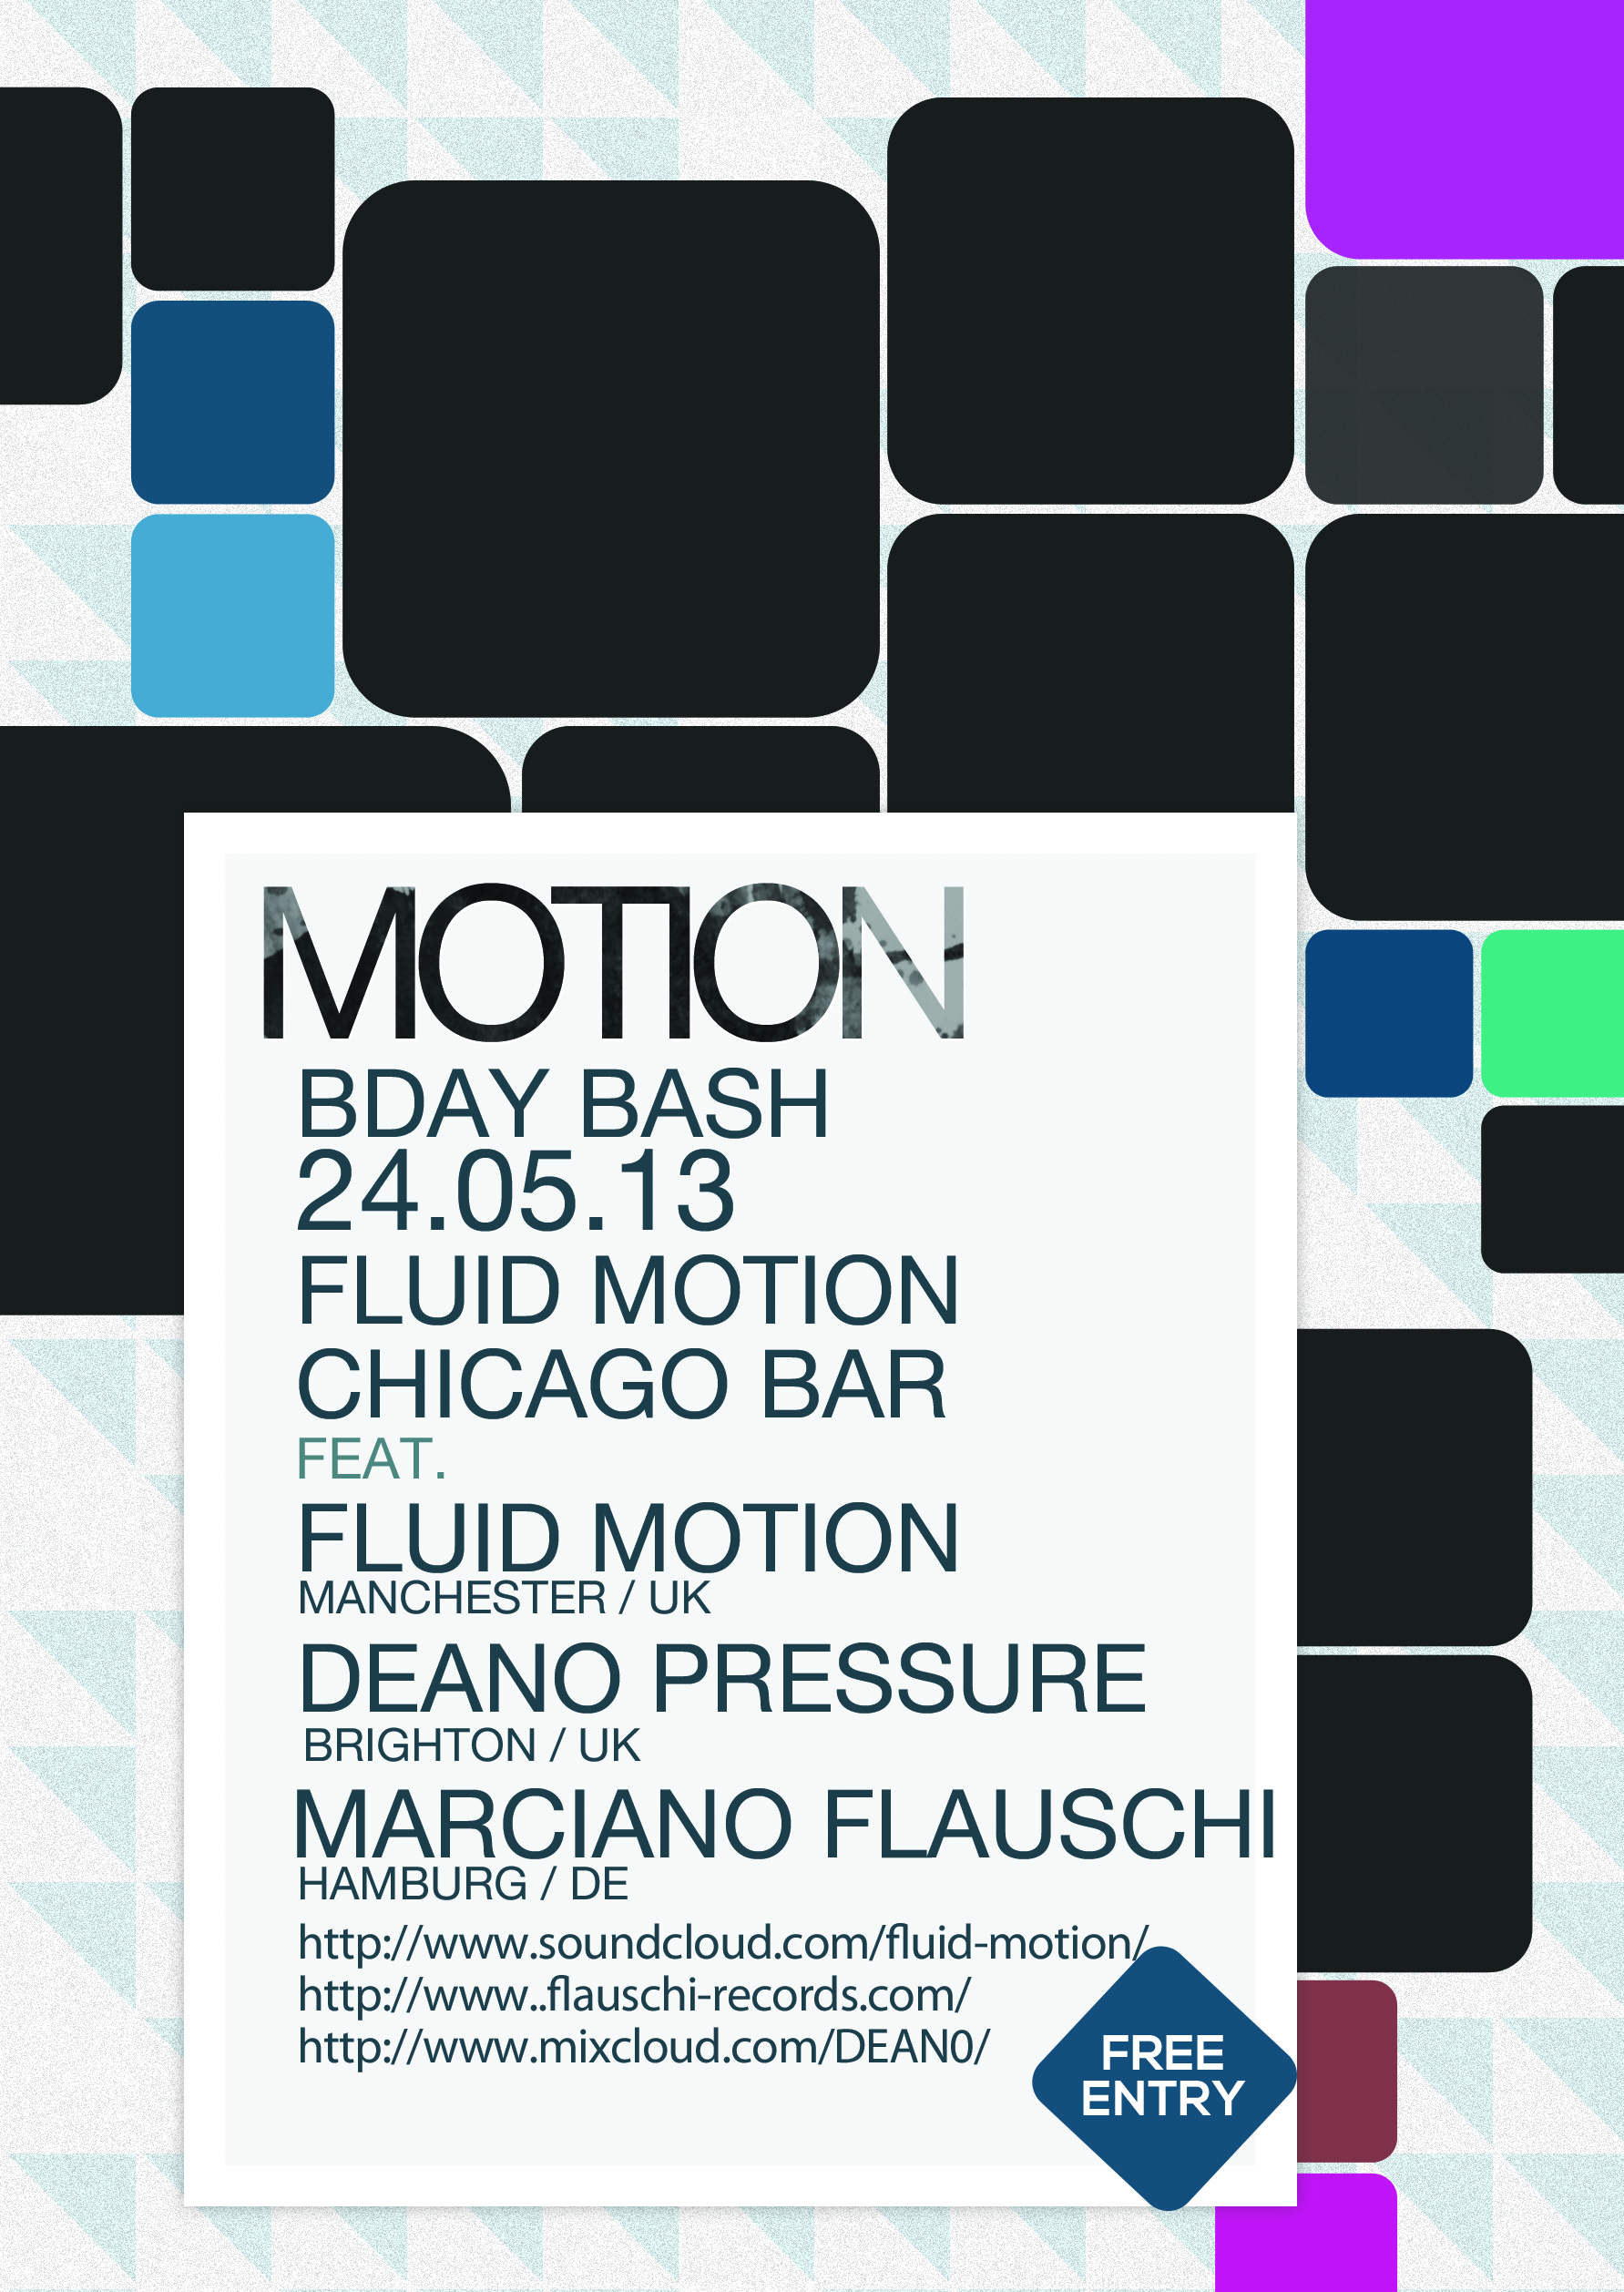 MOTION BDAY BASH 24.05.2013